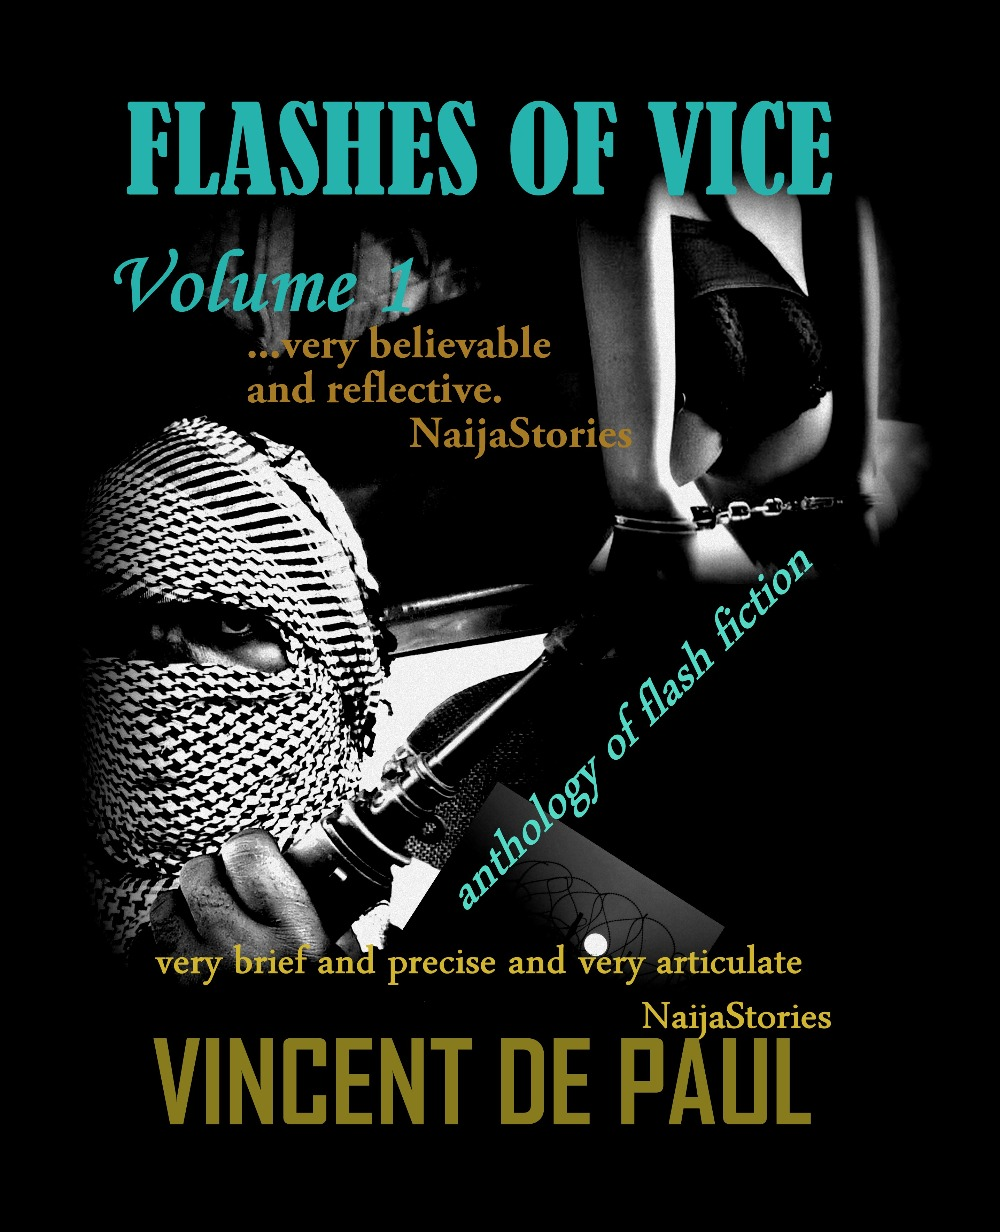 Flashes of Vice: Vol I (Collection of Flash Stories)